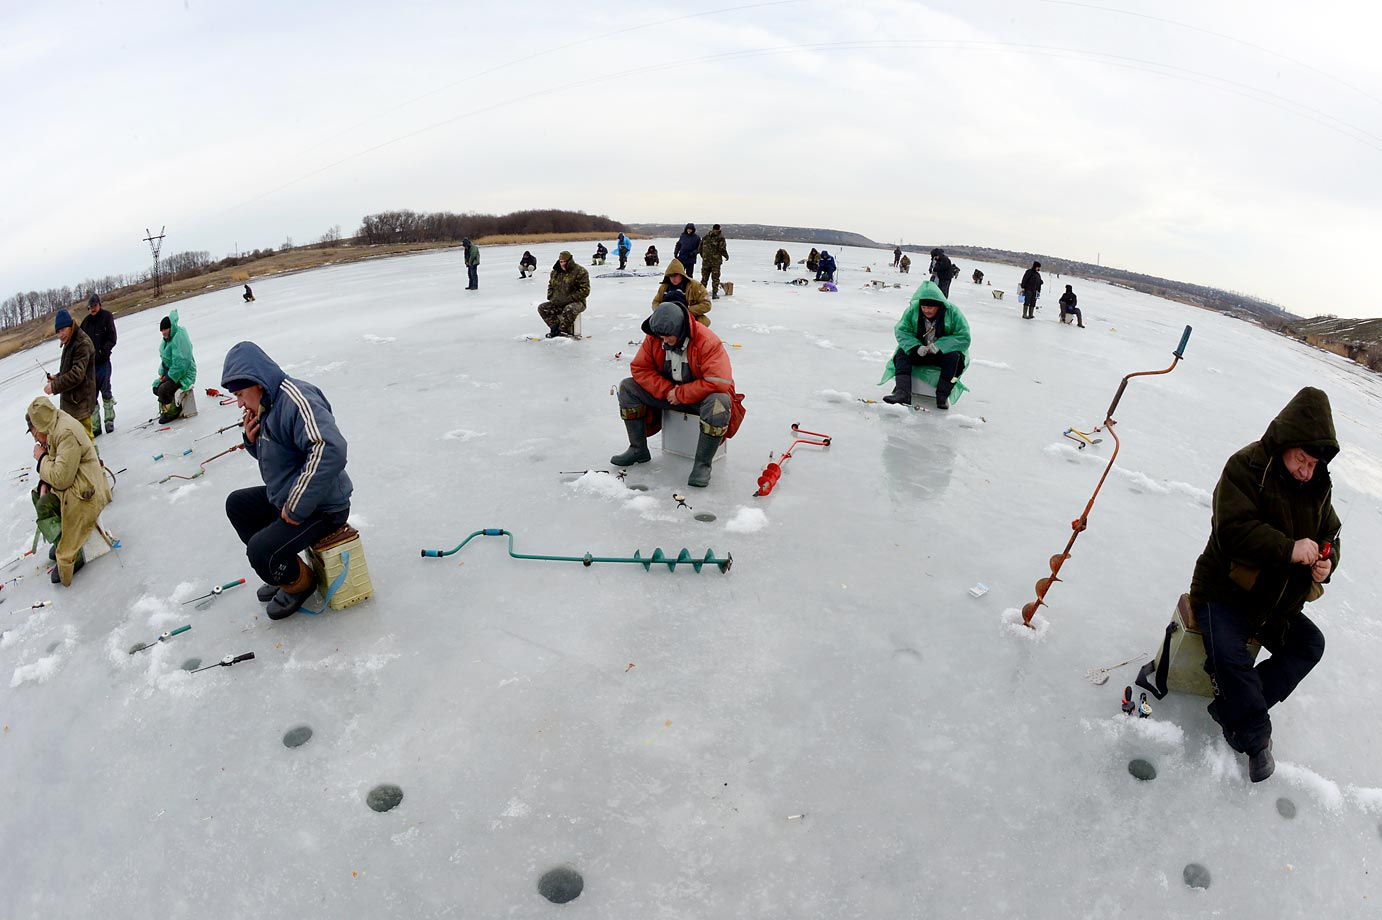 Apparently, ice fishing is popular in eastern European countries.